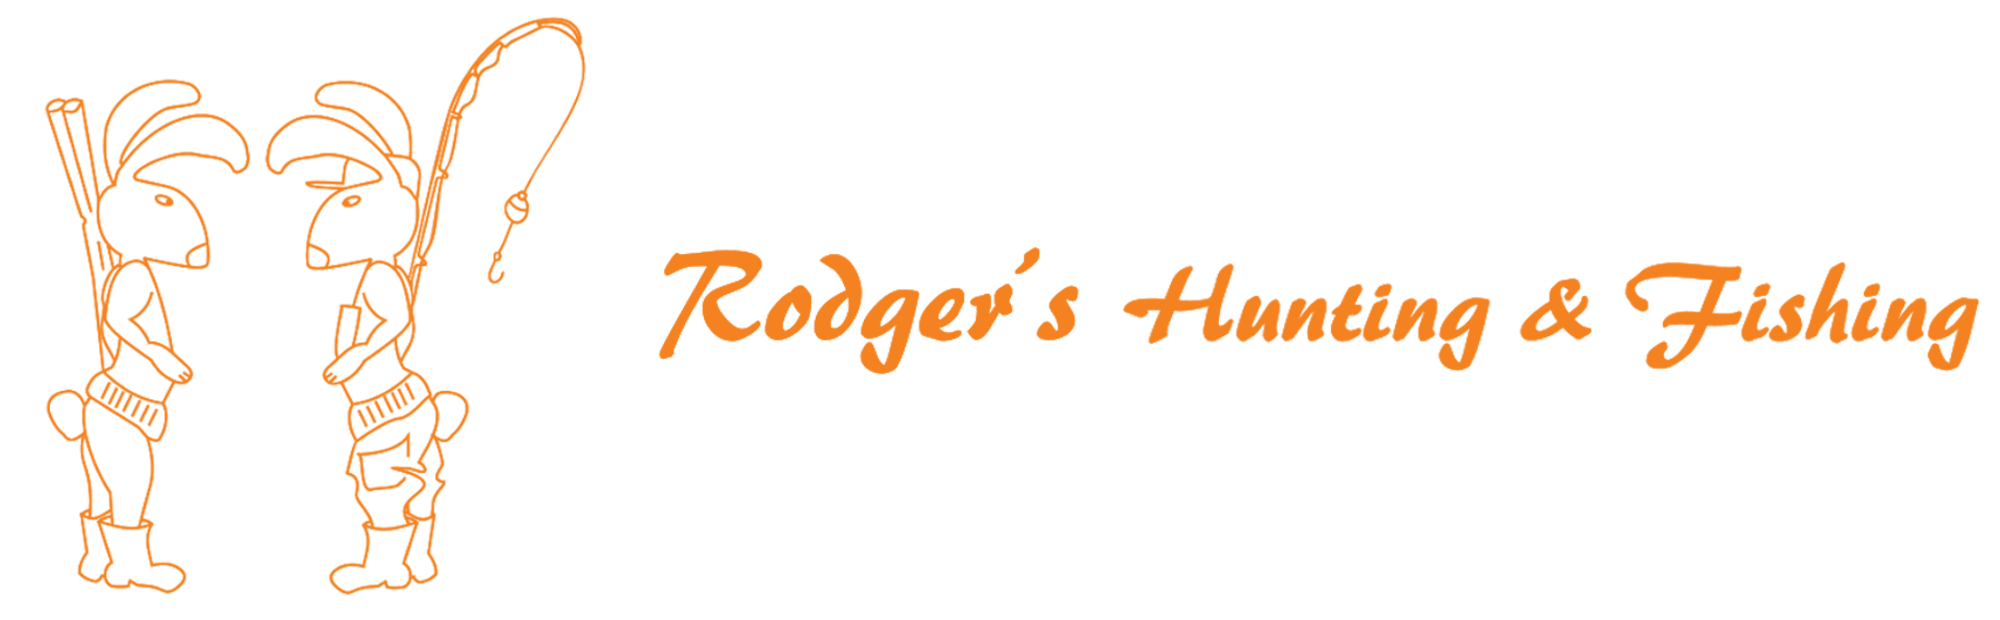 Rodger's H&F